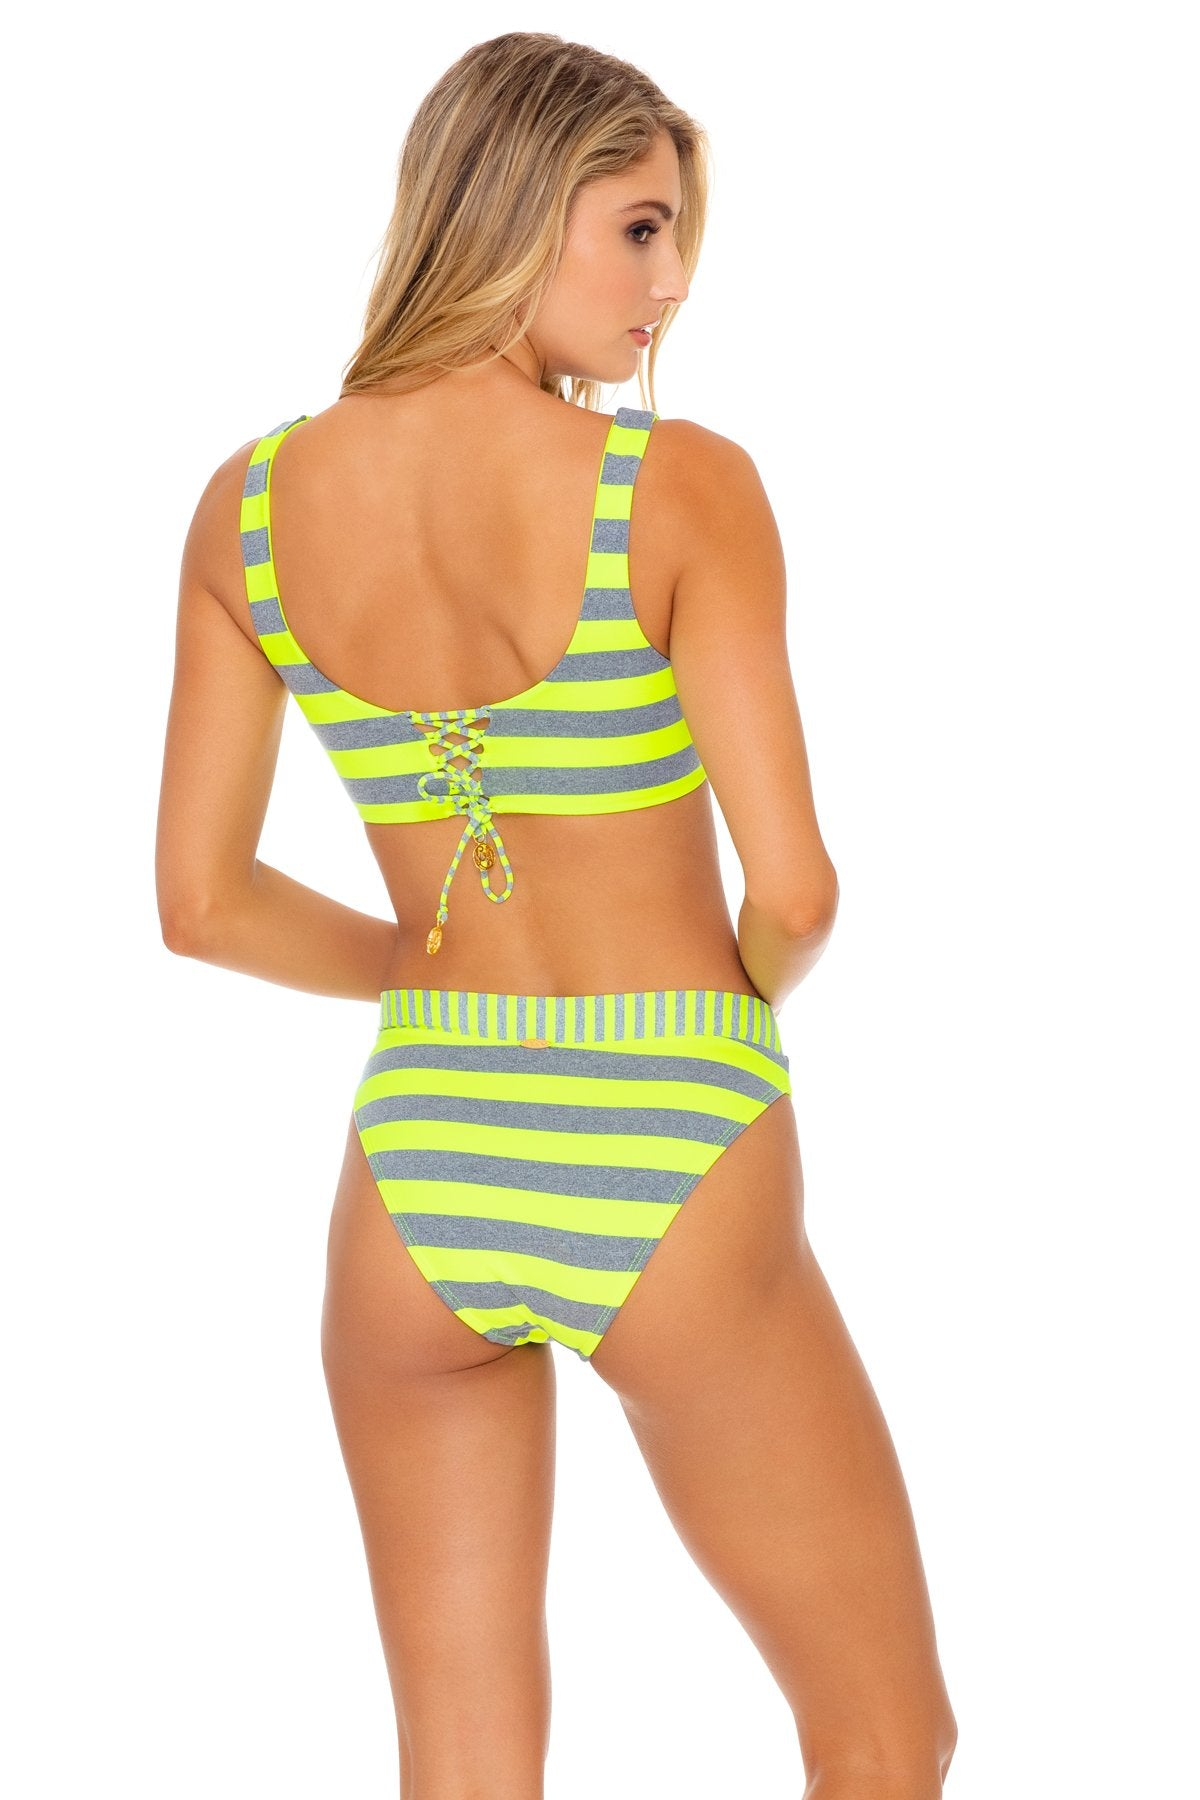 TIME TO FIESTA - Tank Bralette & High Leg Banded Waist Bottom • Neon Yellow